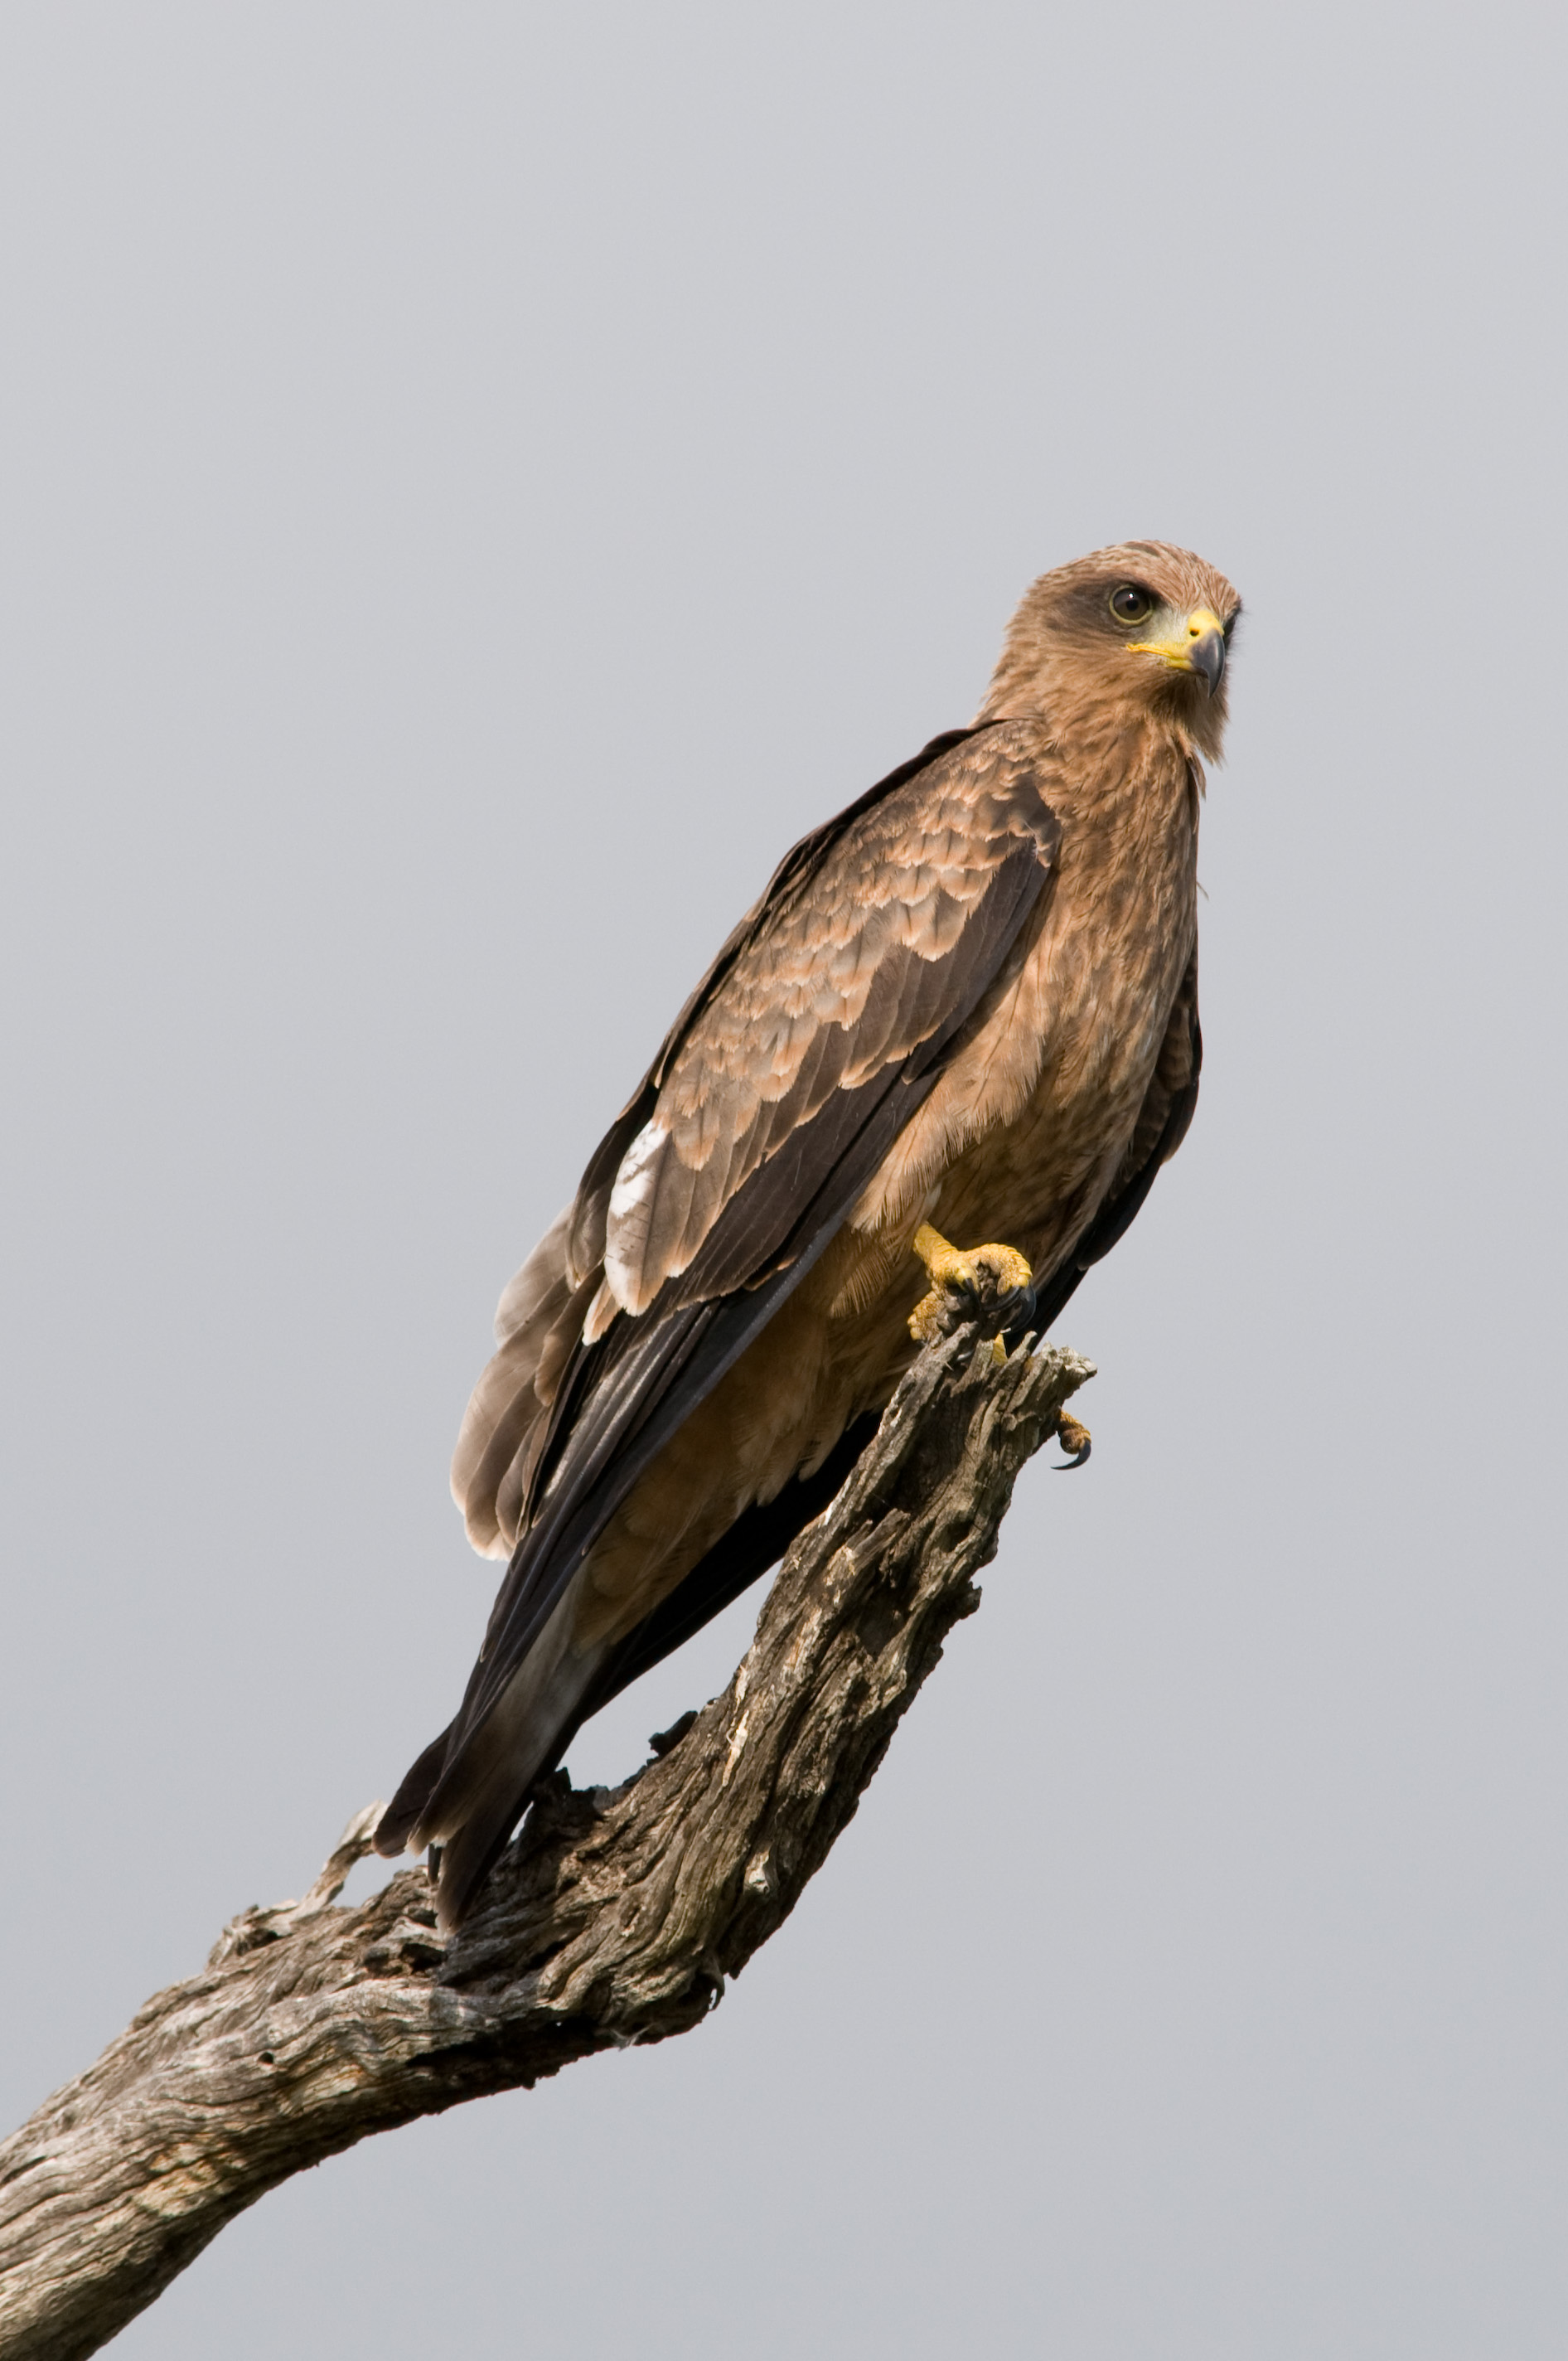 https://upload.wikimedia.org/wikipedia/commons/8/8d/Black_Kite_2364818940.jpg